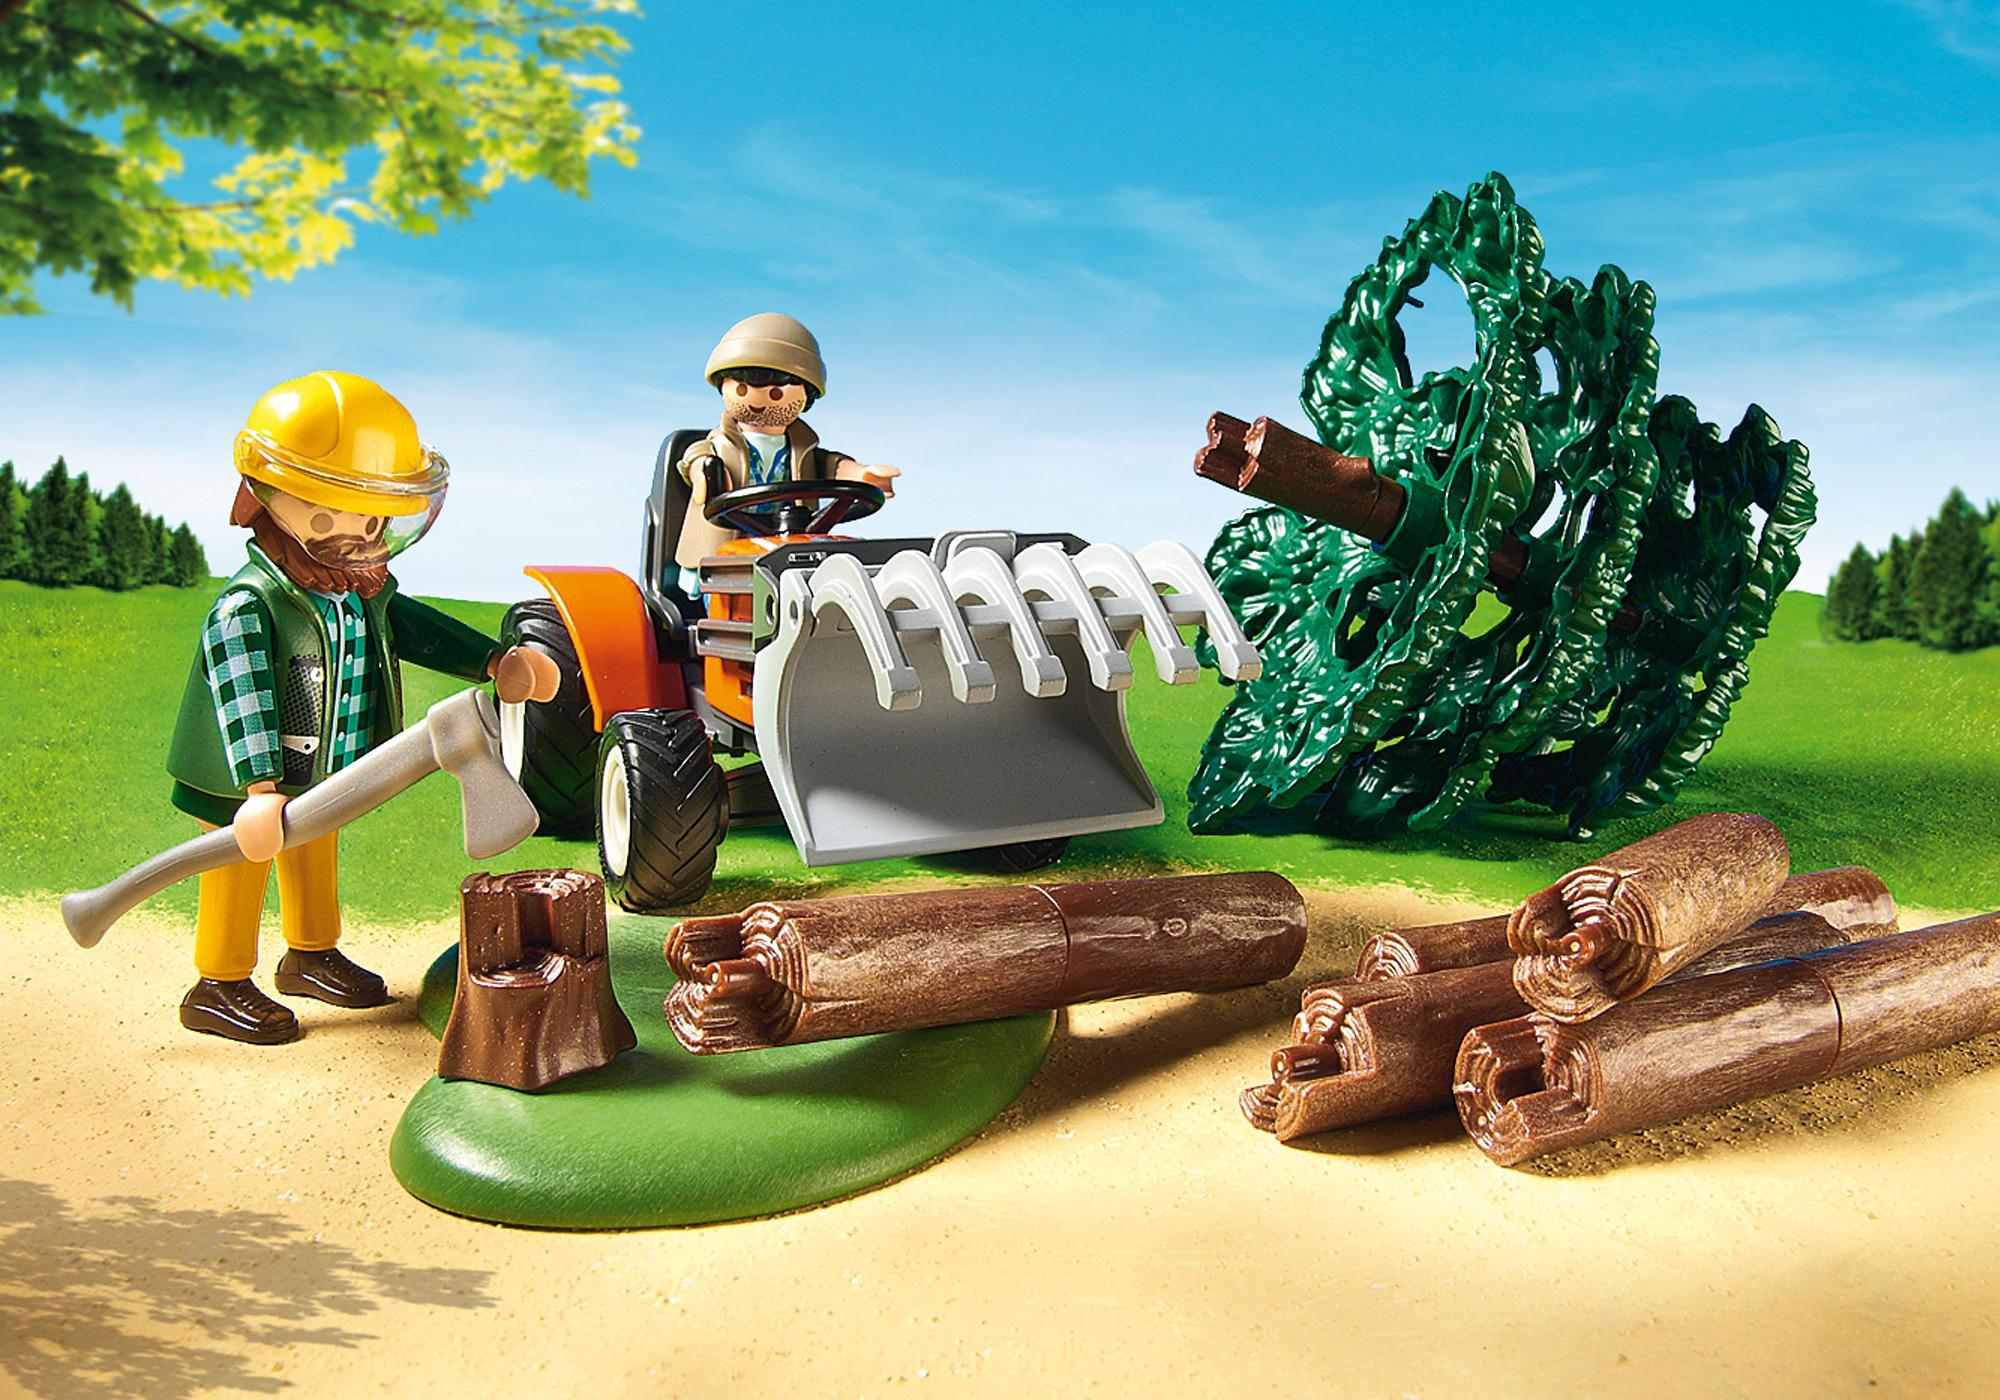 http://media.playmobil.com/i/playmobil/6814_product_extra2/Houthakker met tractor